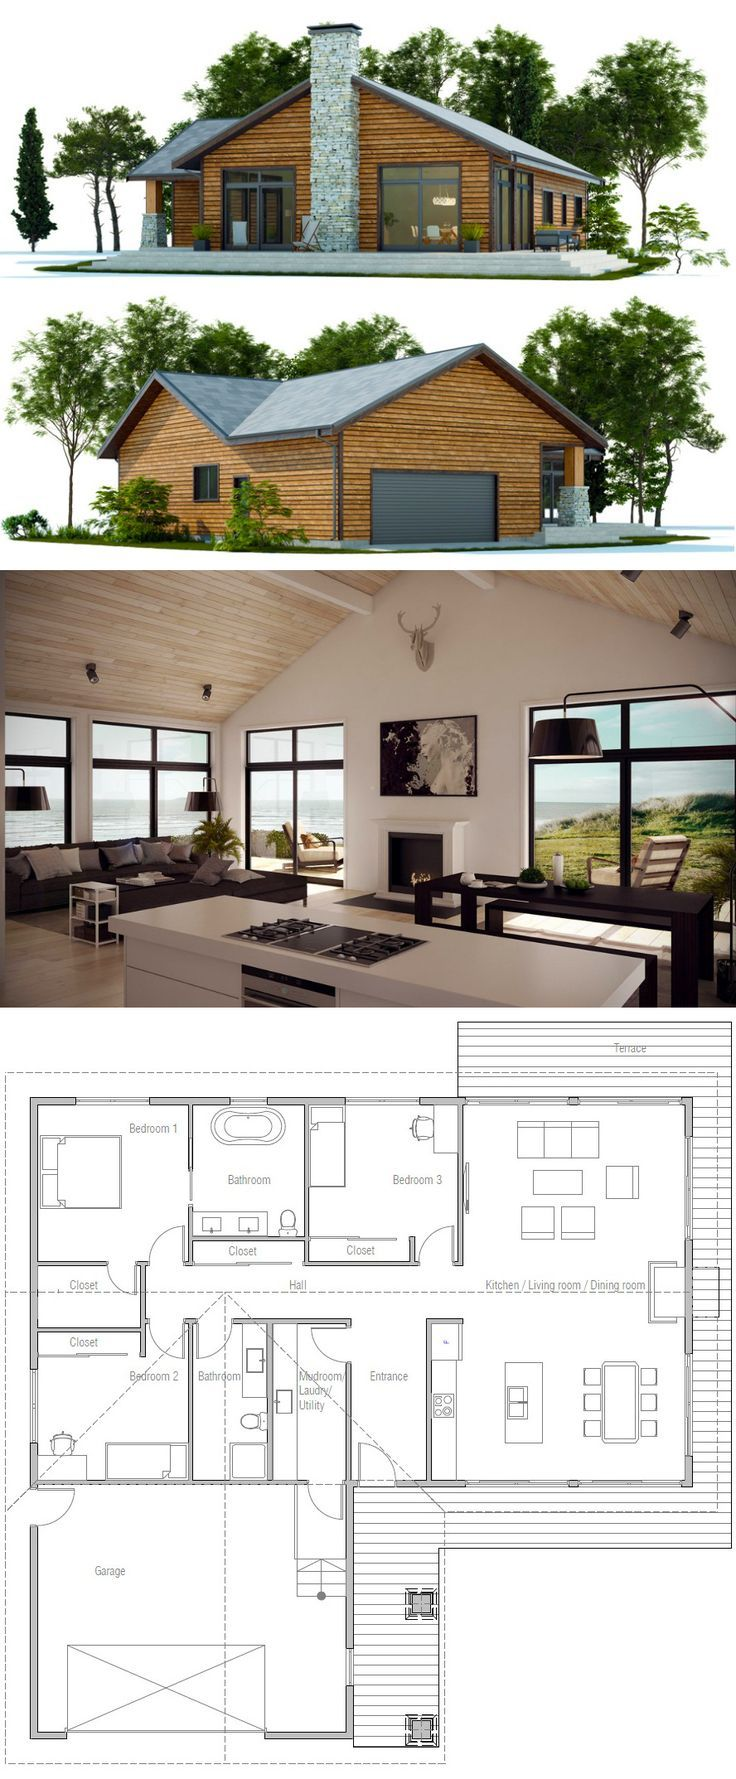 Cool Single Story Home Plan Modern Farmhouse Plans Small Farmhouse Plans Cottage Plan